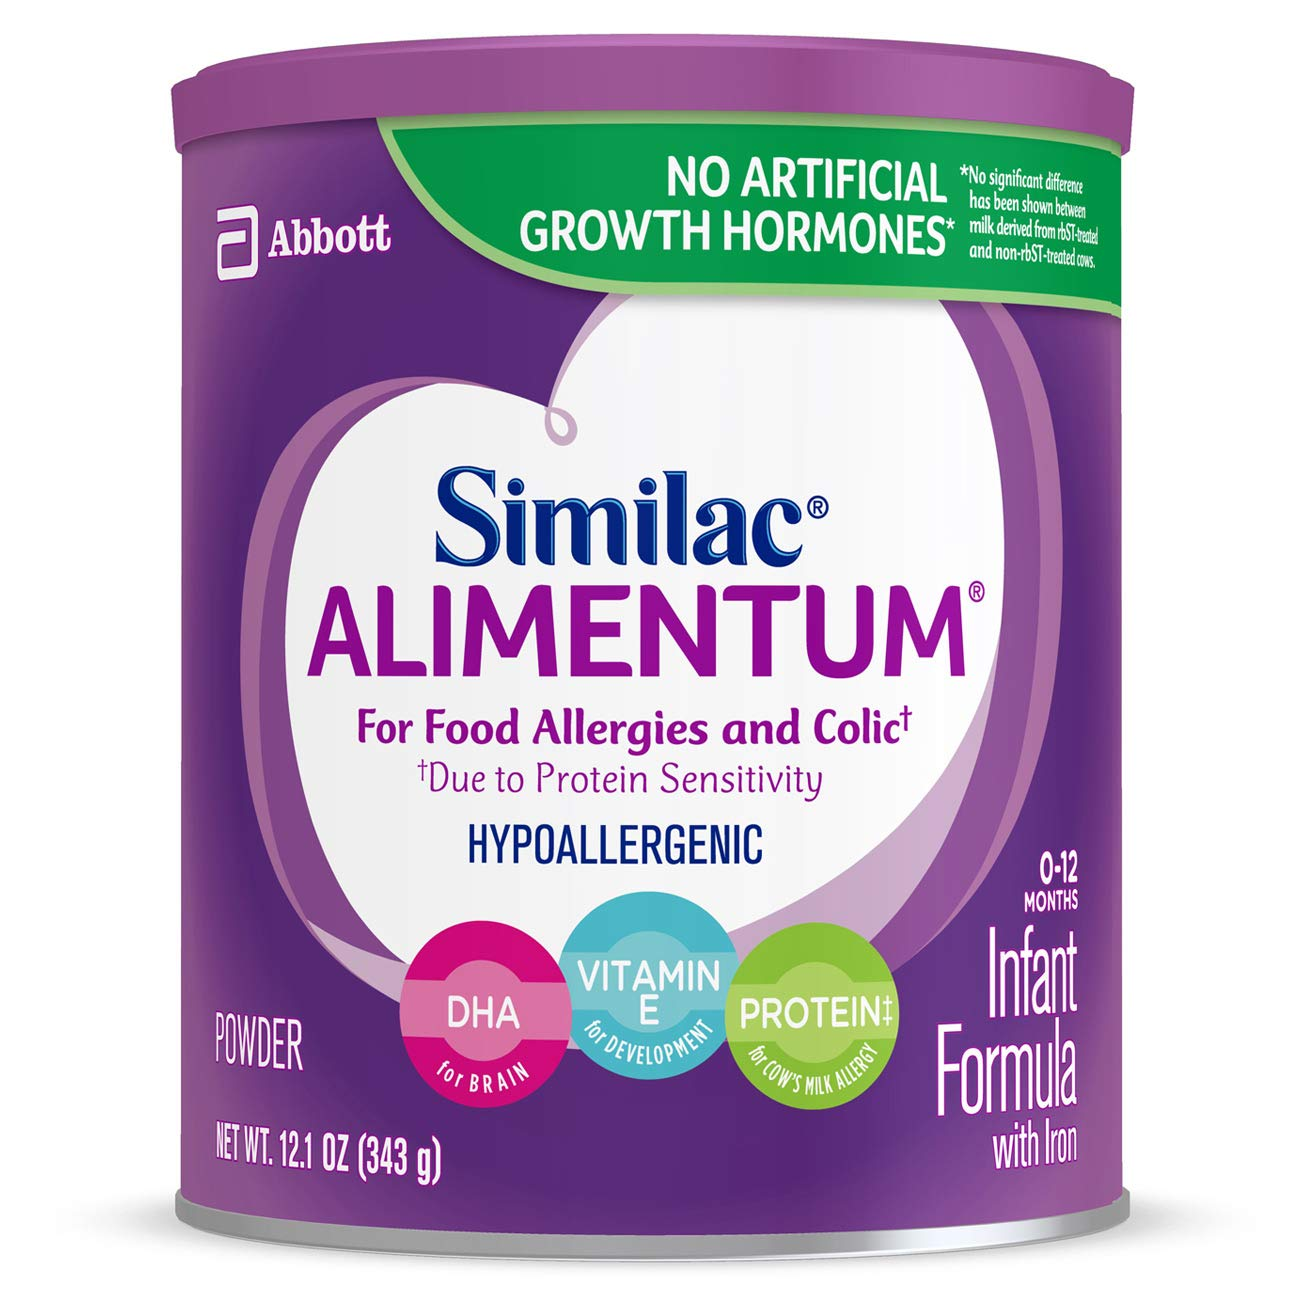 Similac Alimentum Hypoallergenic Infant Formula for Food Allergies and Colic, Baby Formula, Powder, 12.1 ounces (Pack of 6)